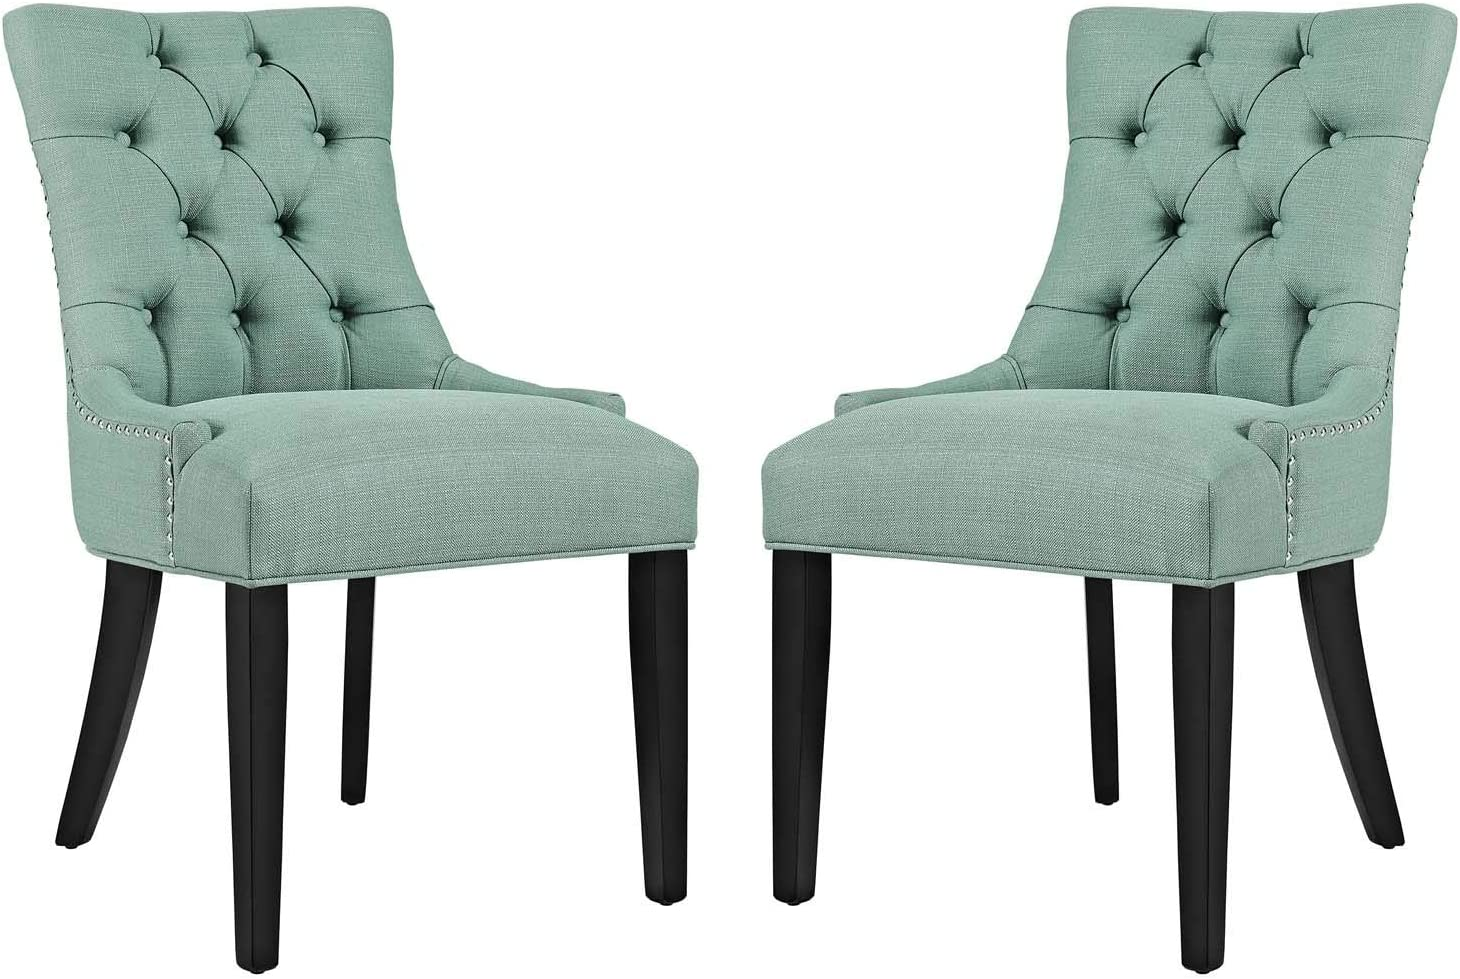 Modway Regent Modern Tufted Upholstered Fabric Two Kitchen and Dining Room Chairs with Nailhead Trim in Laguna